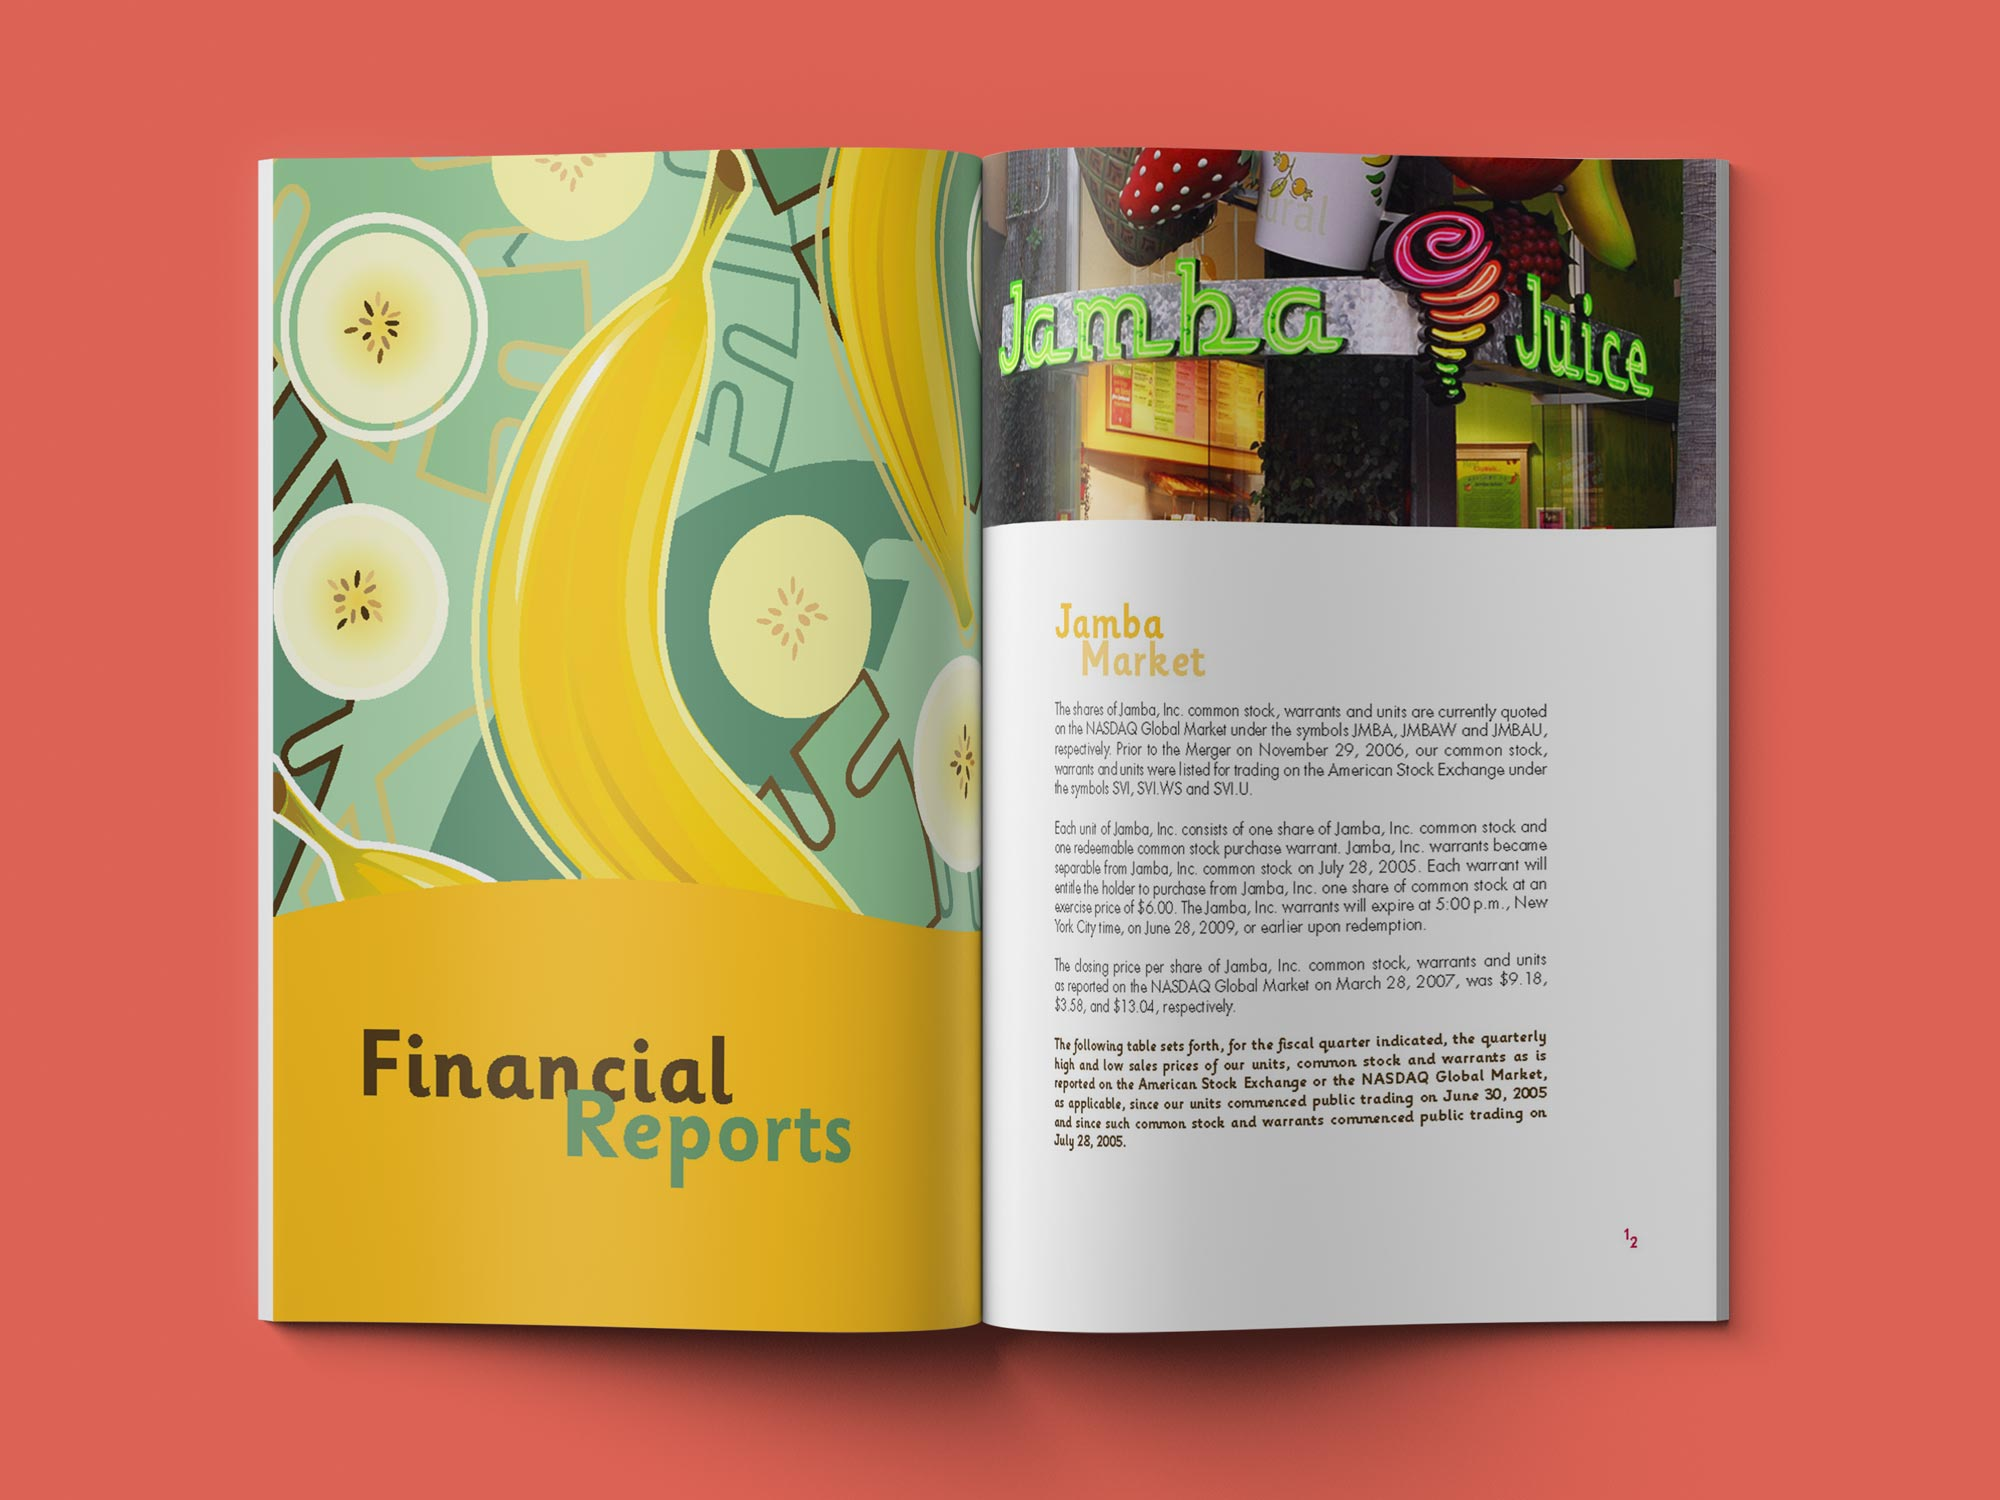 Jamba Juice Annual Report Financial Reports spread.